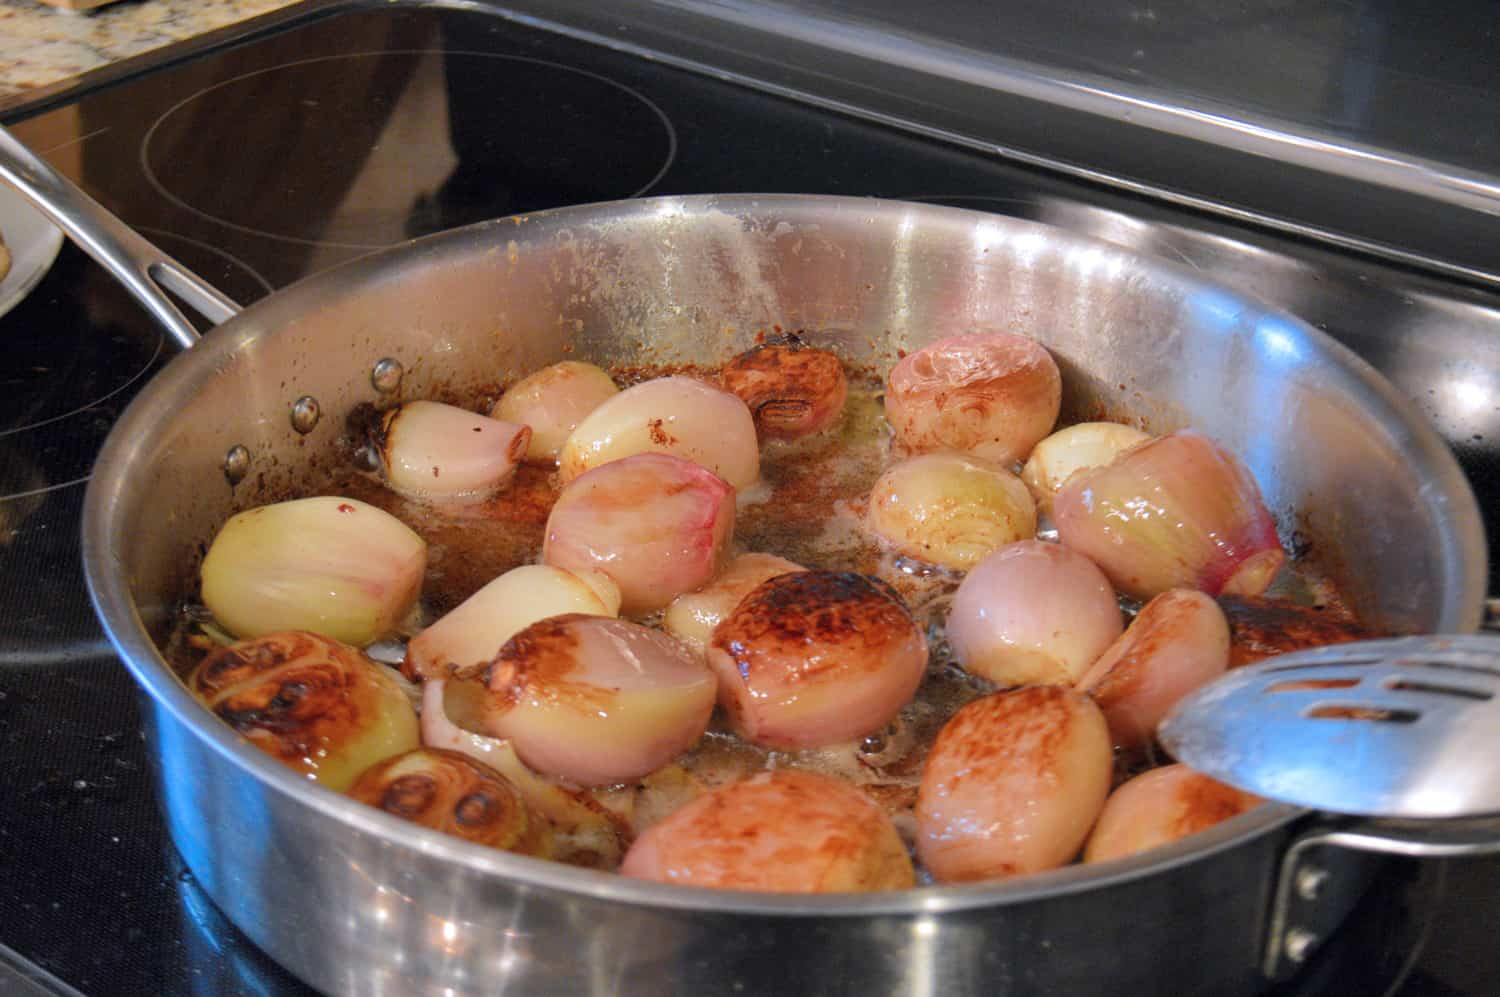 The New York Times' Chicken with Shallots recipe pairs chicken thighs with caramelized shallots in a rich, delicious sauce. It is 100% crowd pleaser! #nytchickenwithshallots #chickenwithshallots #easychickenrecipe www.savoryexperiments.com